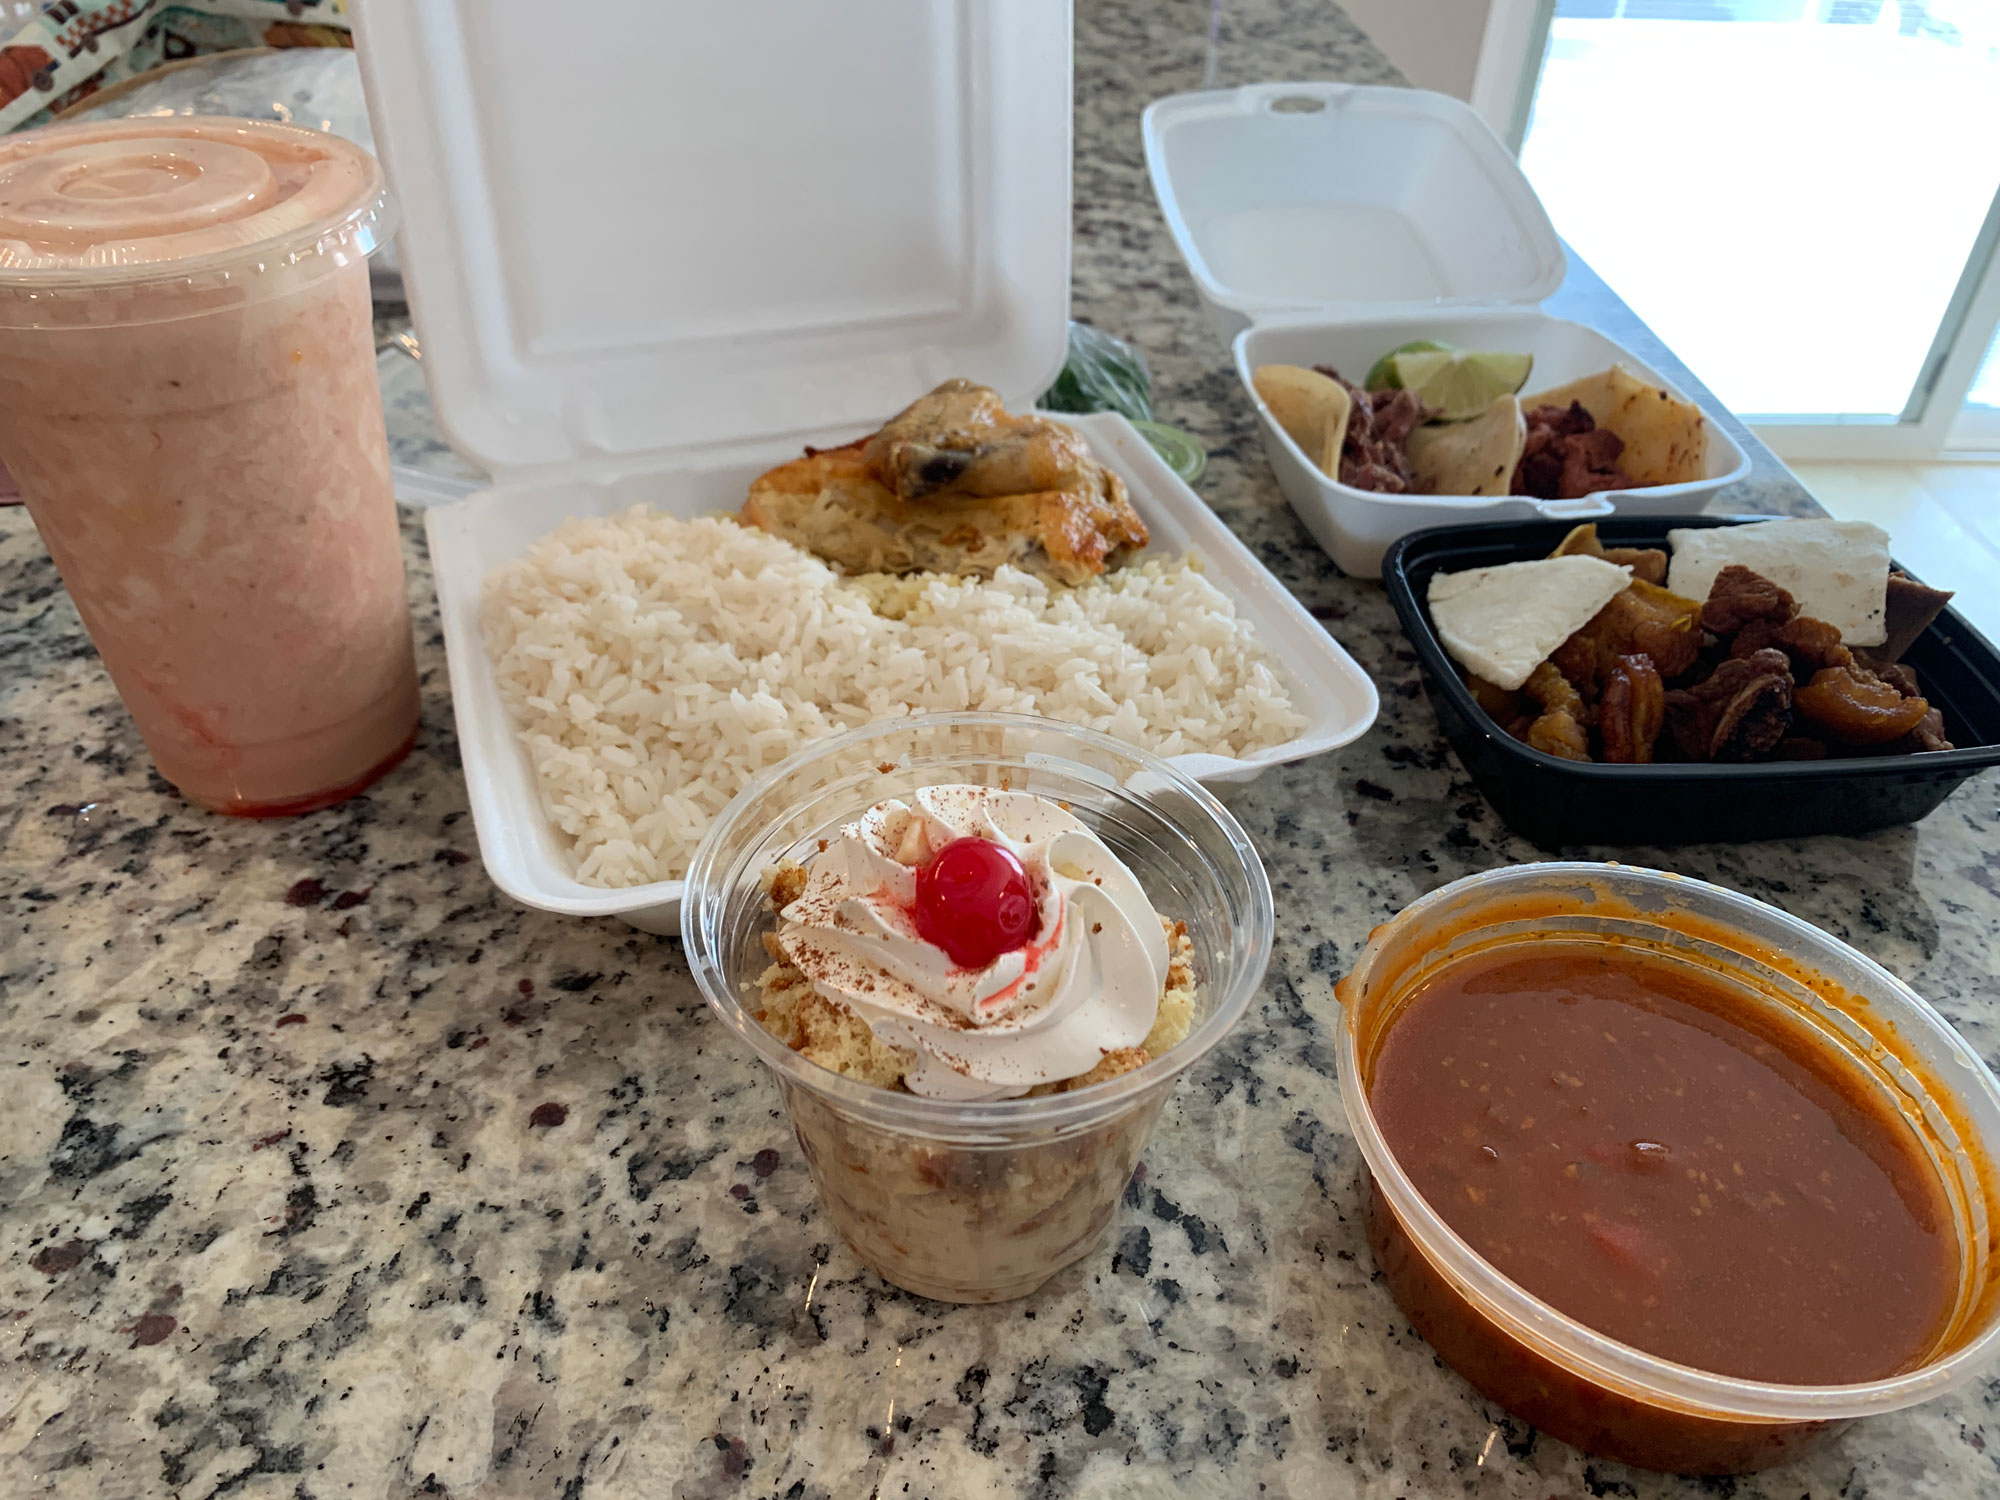 Assorted foods in takeout containers spread on a granite countertop